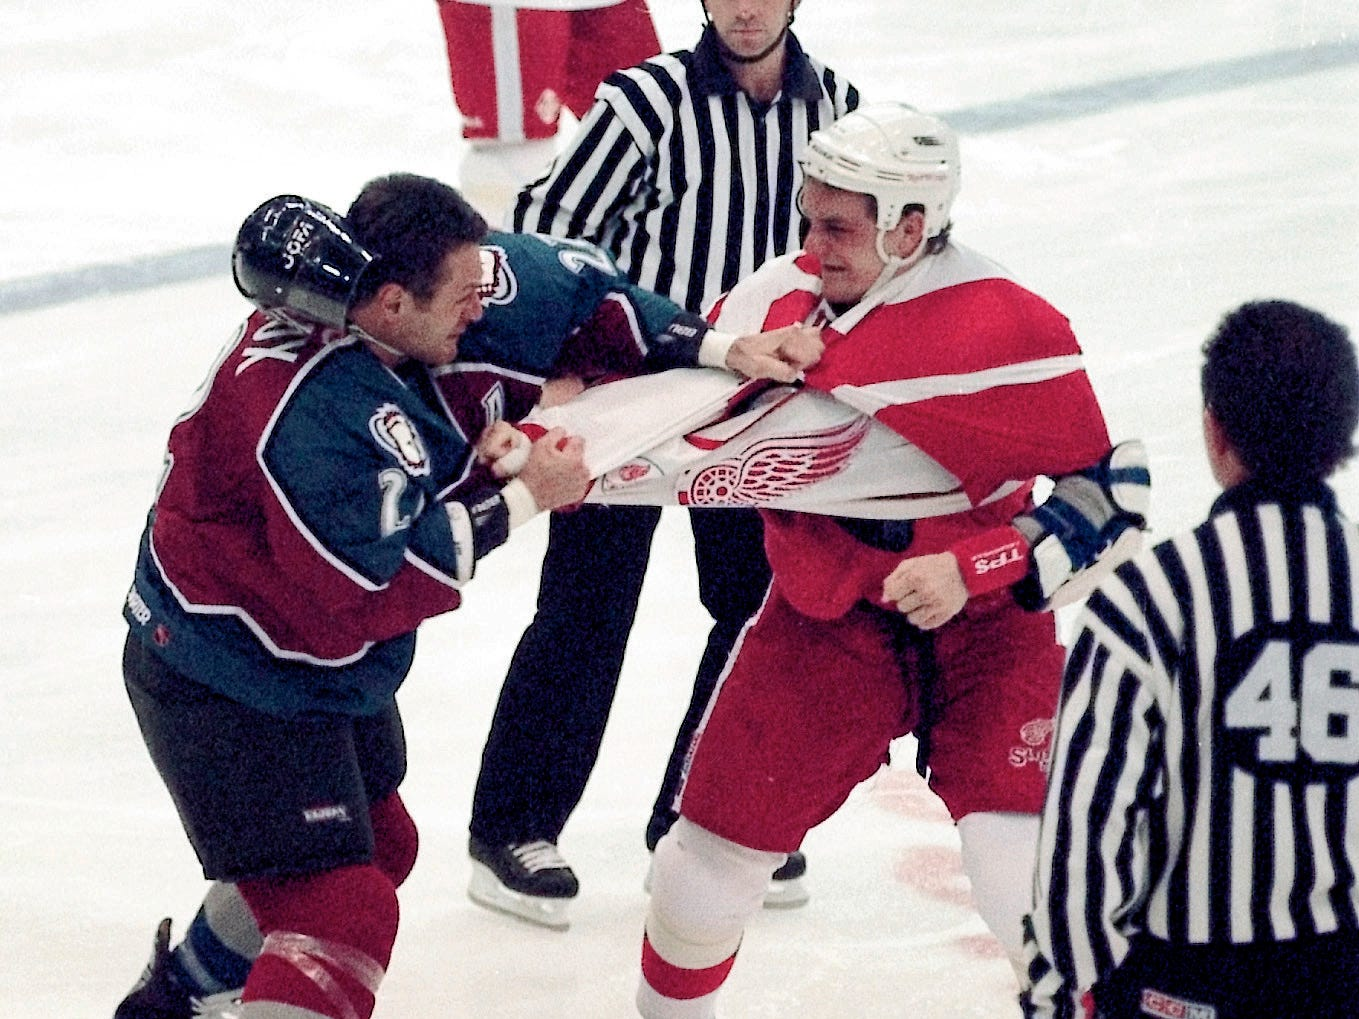 """RED WINGS-AVALANCHE: This one was big in the 1990s, particularly March 26, 1997, or """"Bloody Wednesday,"""" when Darren McCarty and Claude Lemieux went at it in epic fashion. The Wings got the last laugh, winning the Stanley Cup later that year."""